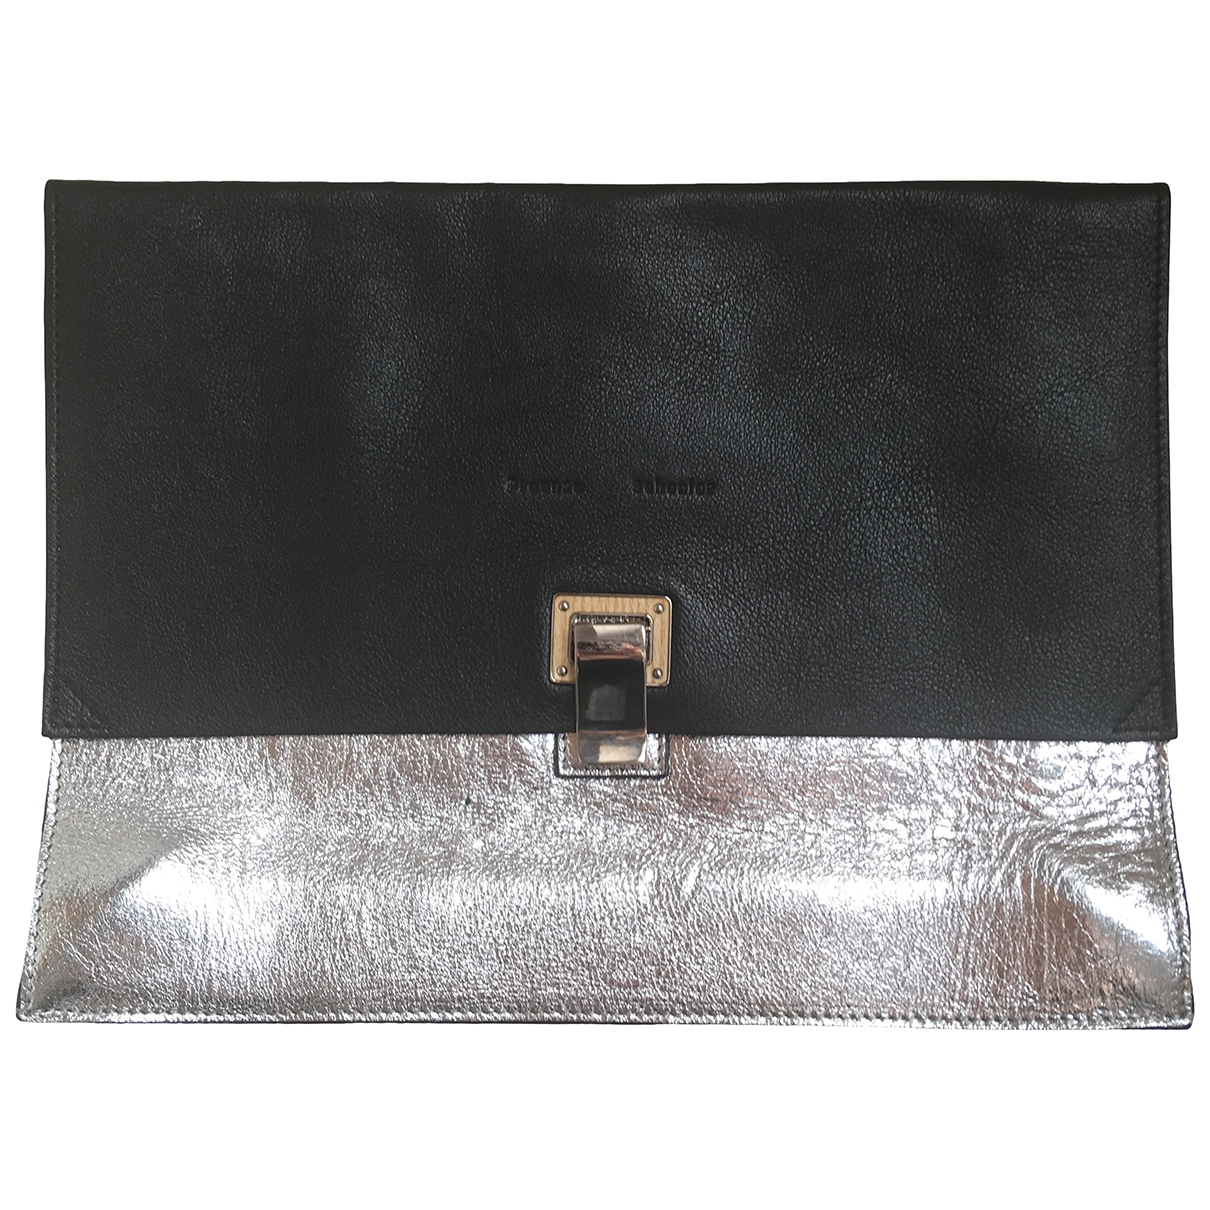 Proenza Schouler Lunch Clutch in  Schwarz Leder